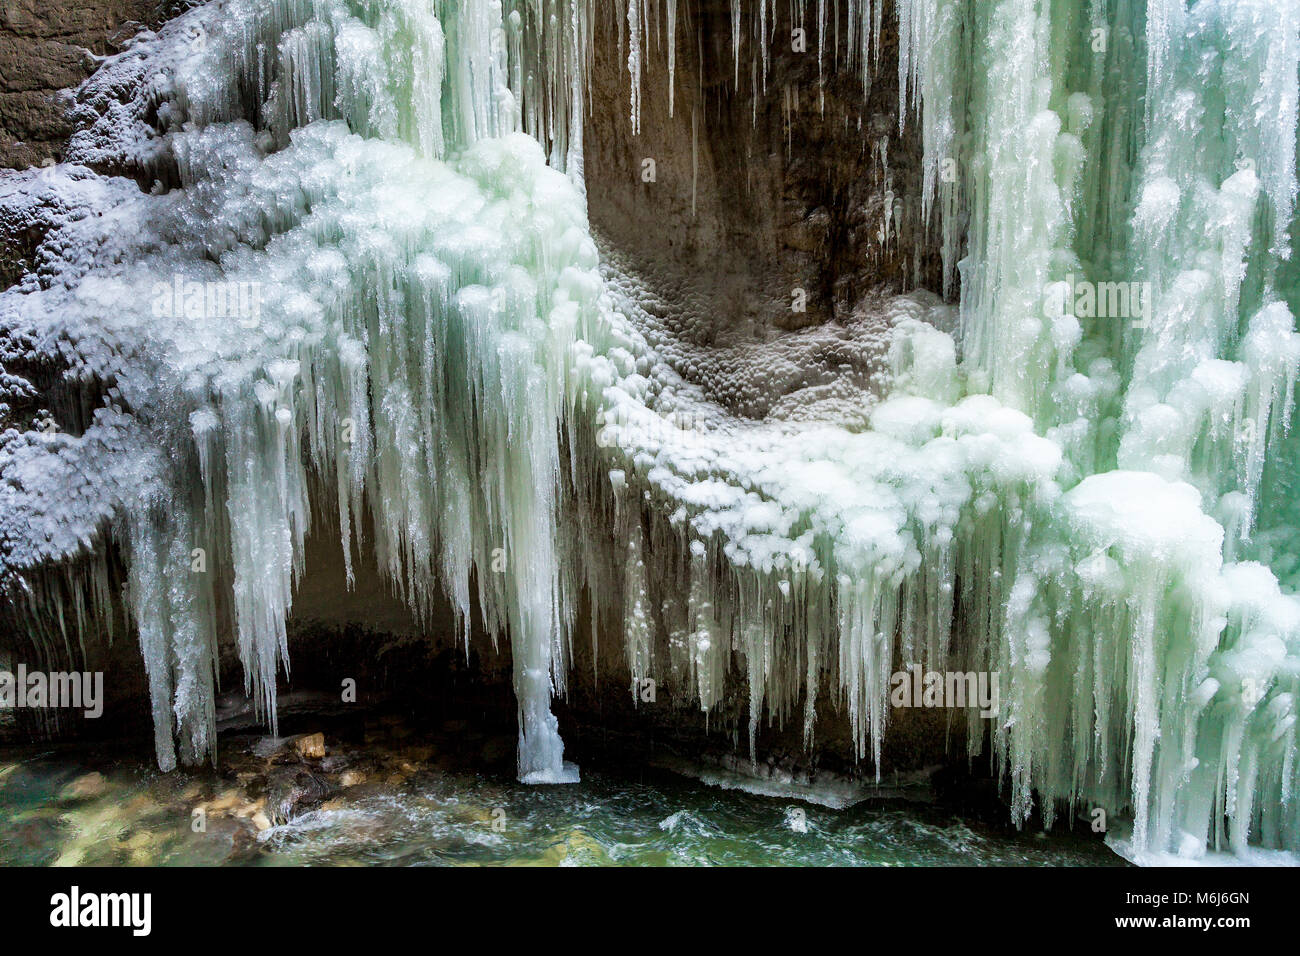 Ice Fall And Icicles In The Partnach Gorge, Bavaria, Germany - Stock Image